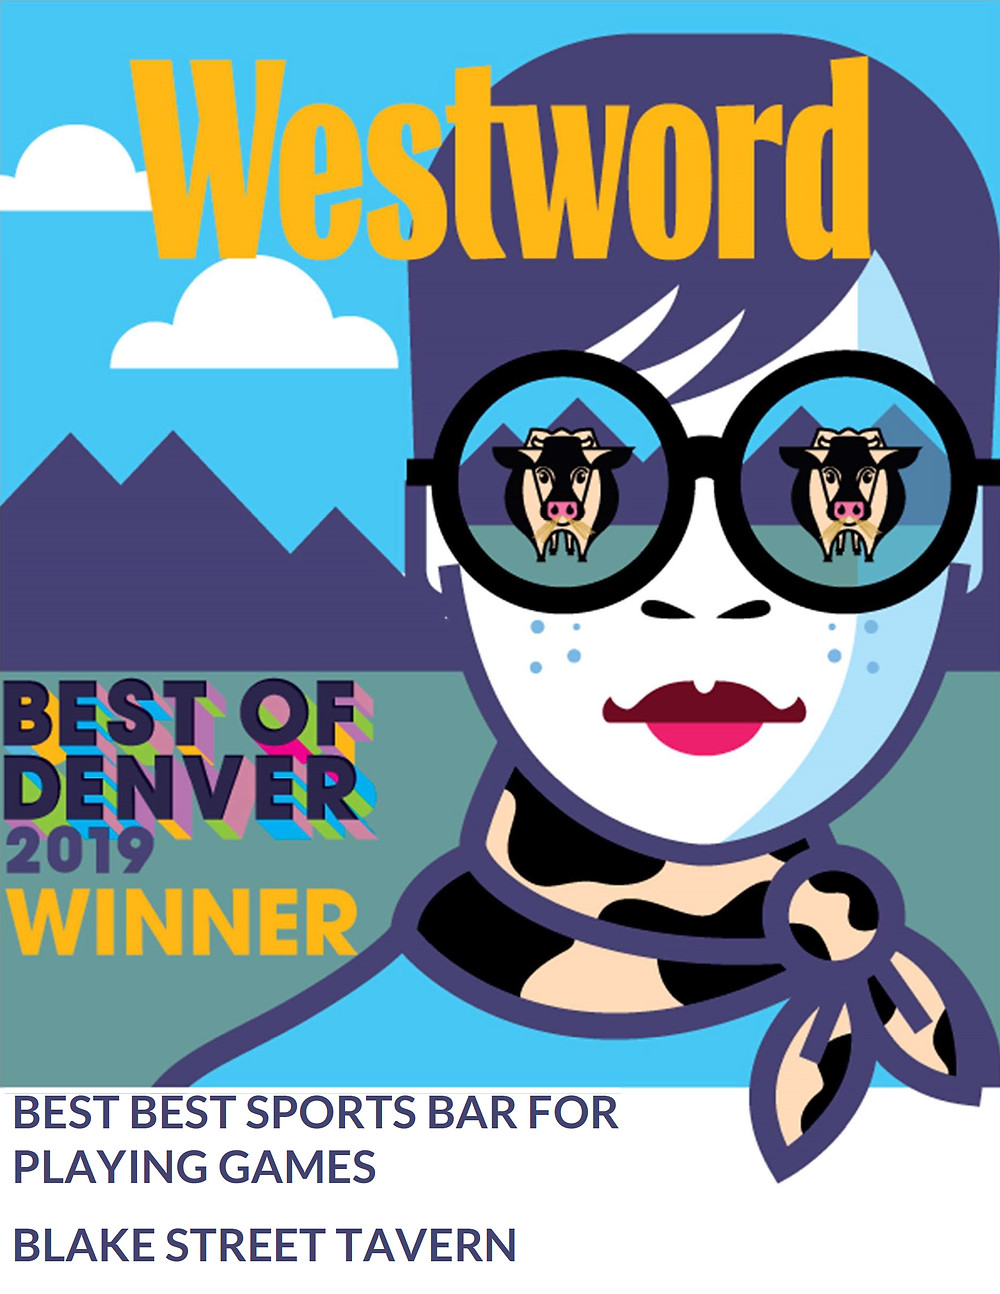 Denvers Best Sports Bar for Playing Games - 2019 Westword